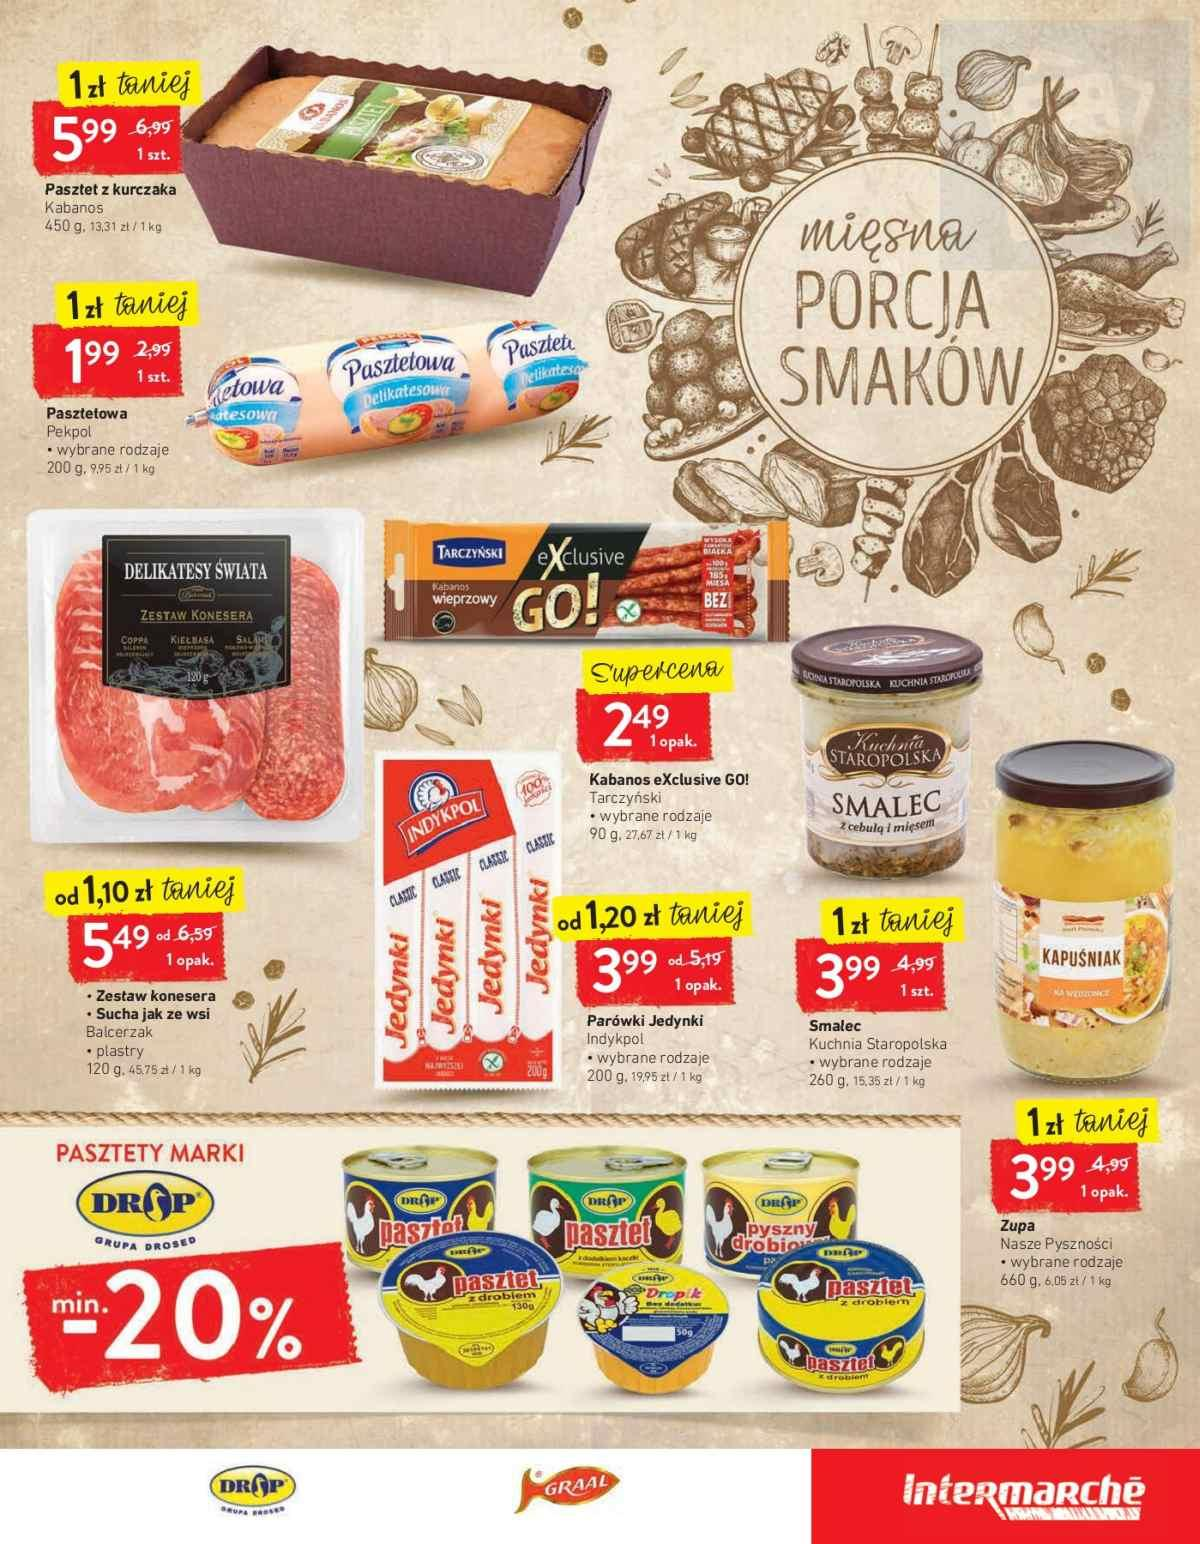 Gazetka promocyjna Intermarche do 18/11/2019 str.16